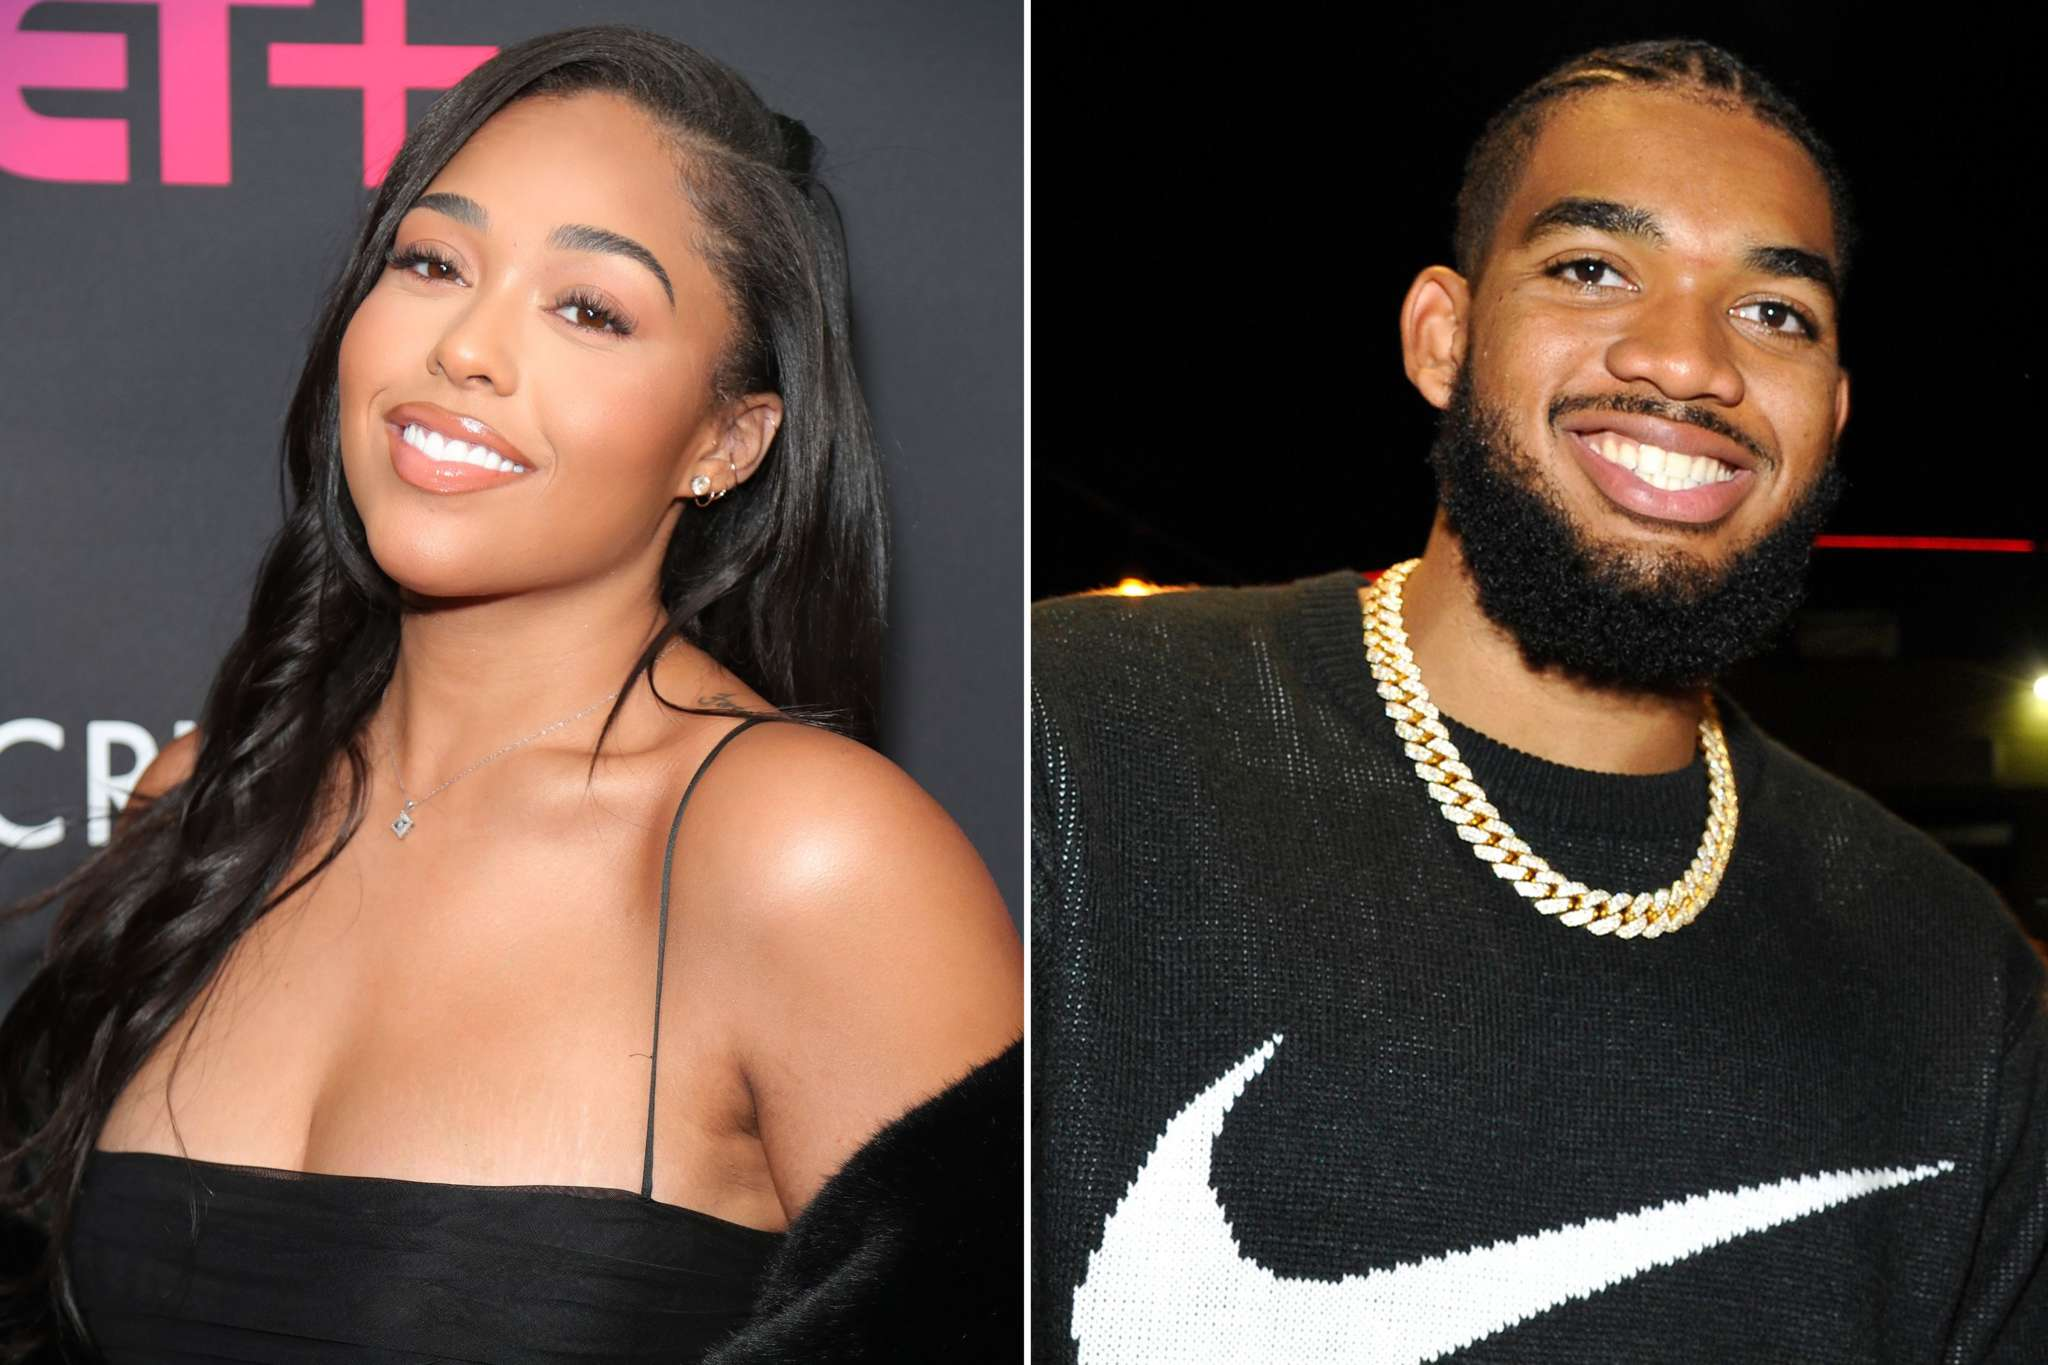 Jordyn Woods Makes Fans' Day With A Birthday Vlog – Check Out The YouTube Video!